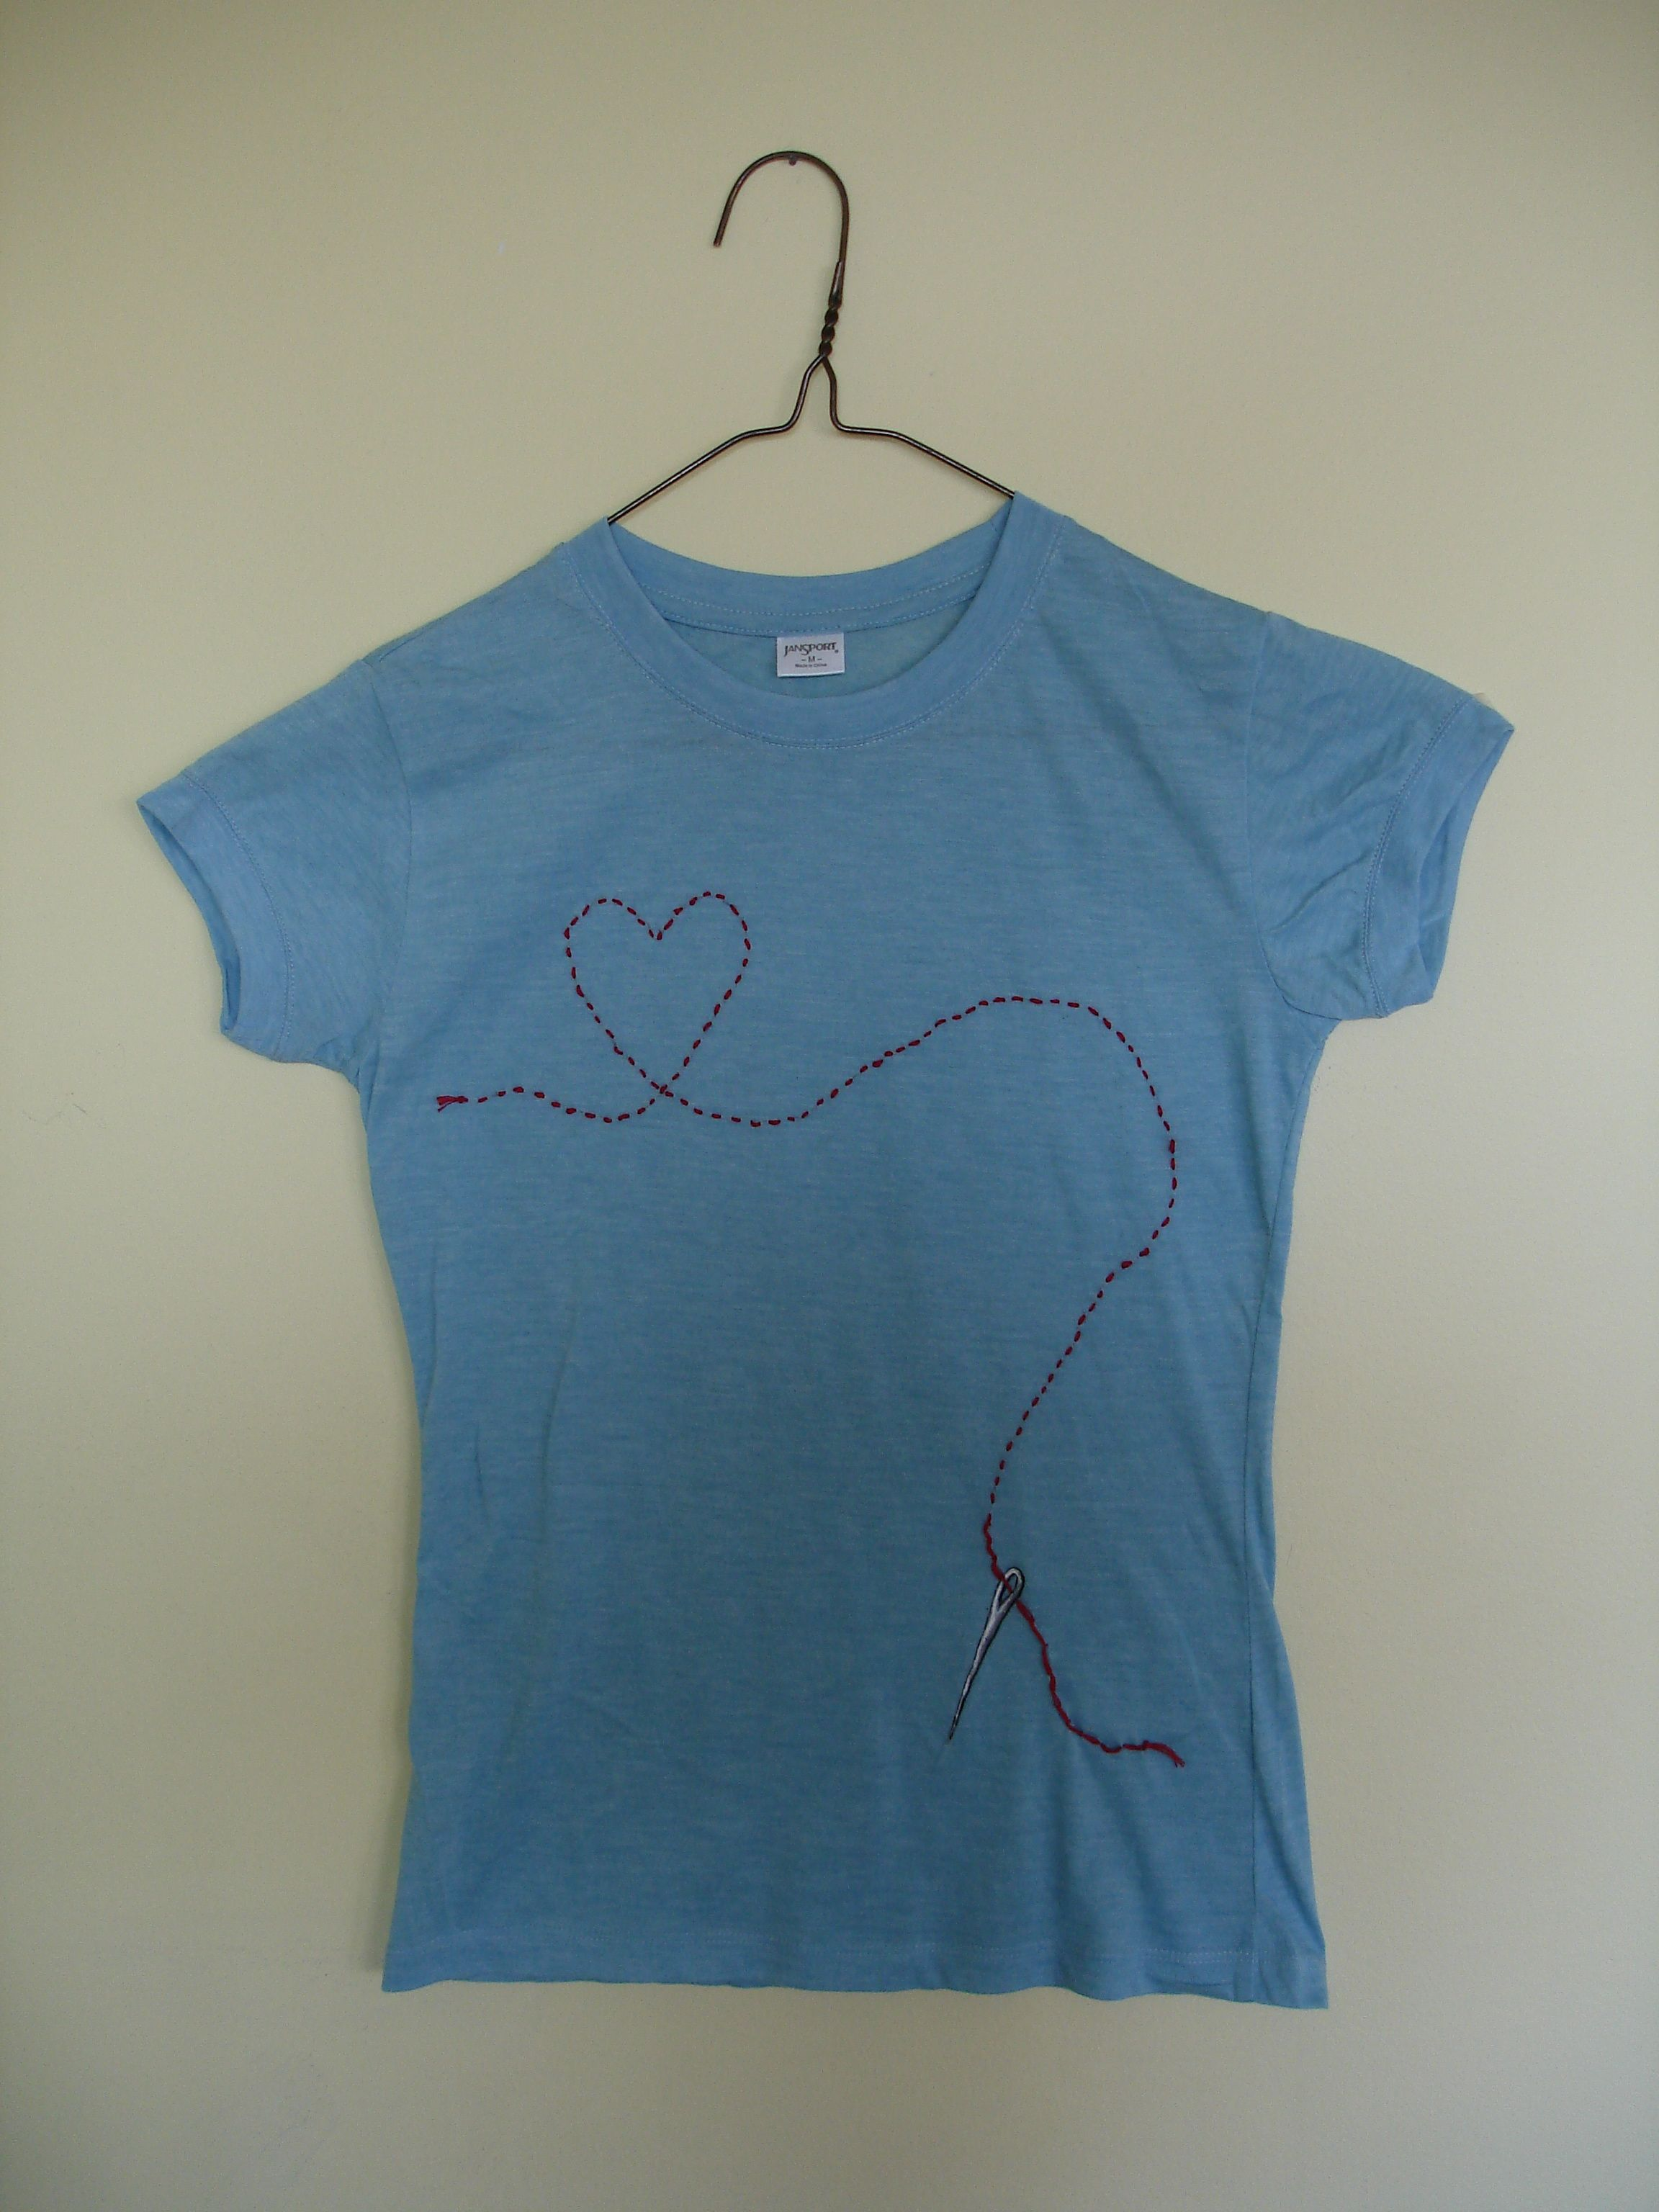 I Heart Sewing Tshirt by Kat Butler acrylic painted